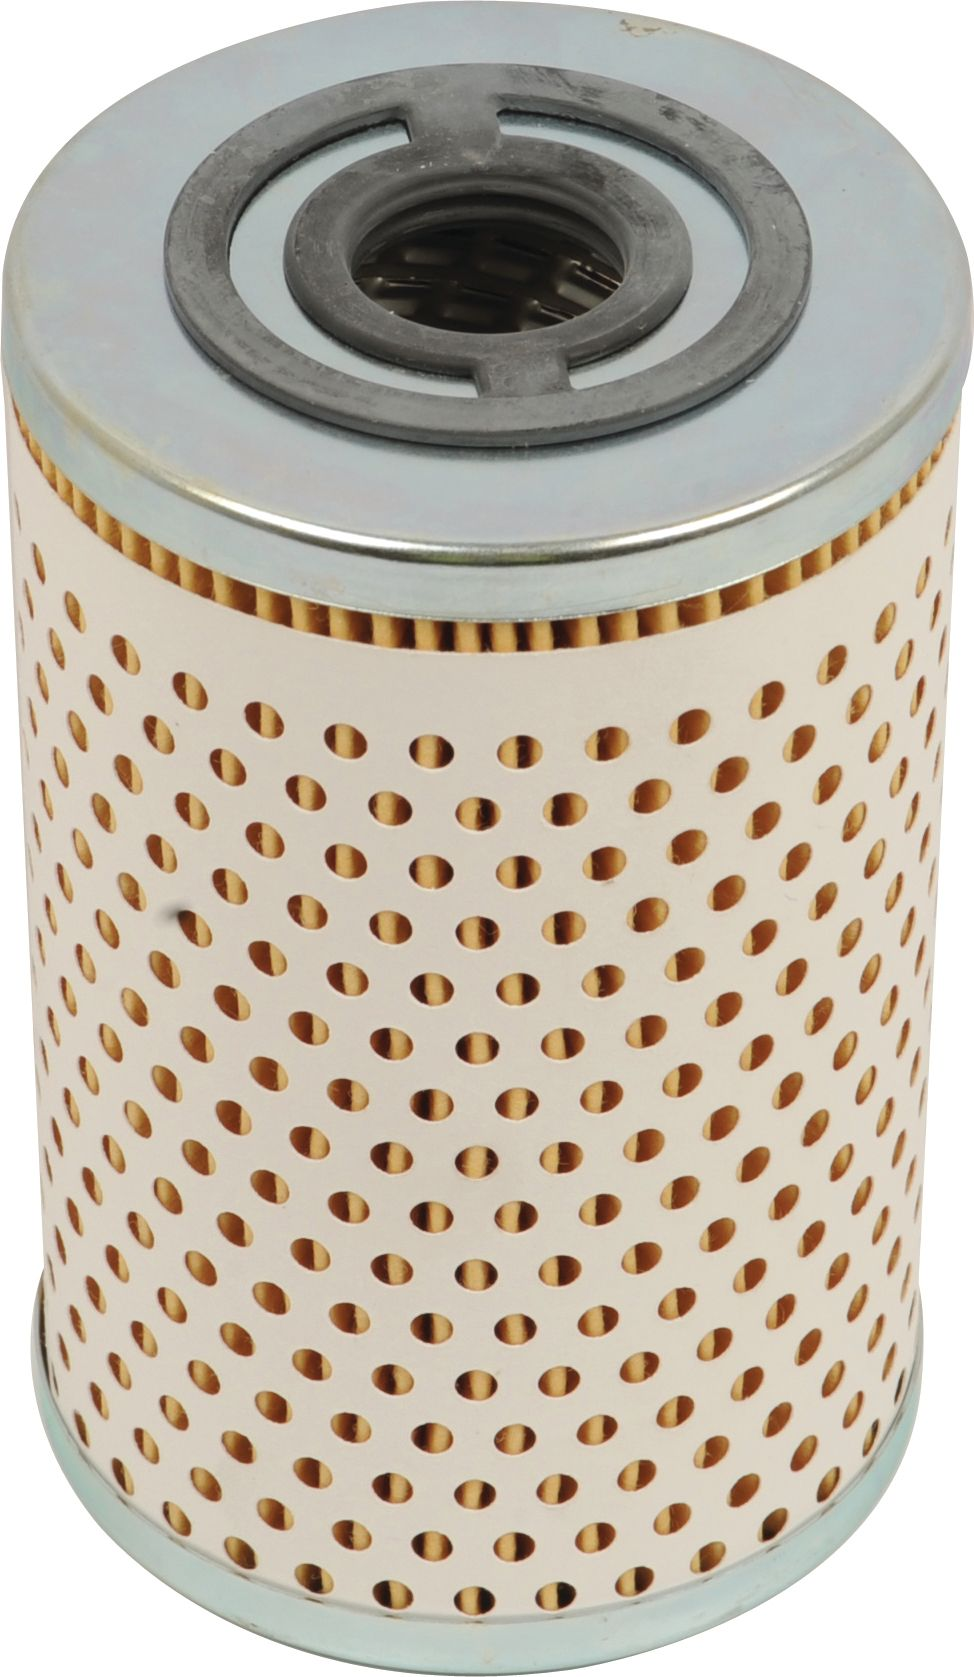 MERCEDES BENZ OIL FILTER LF3605 109427